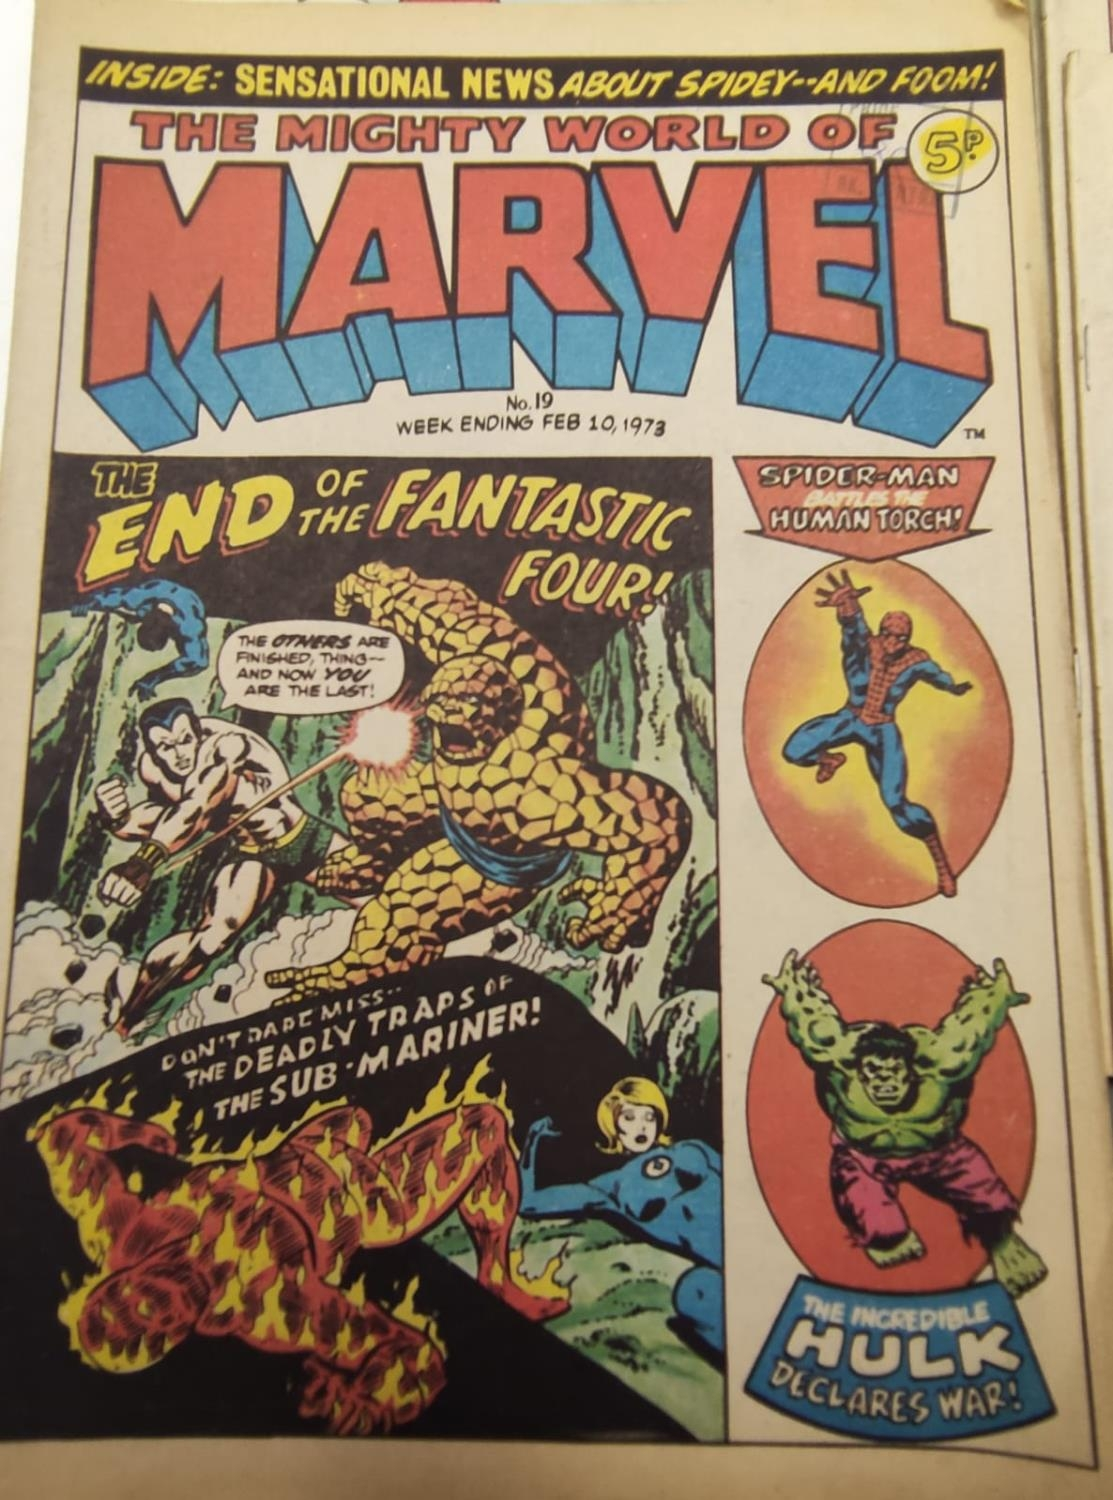 20 editions of mixed Vintage Marvel Comics. - Image 31 of 56